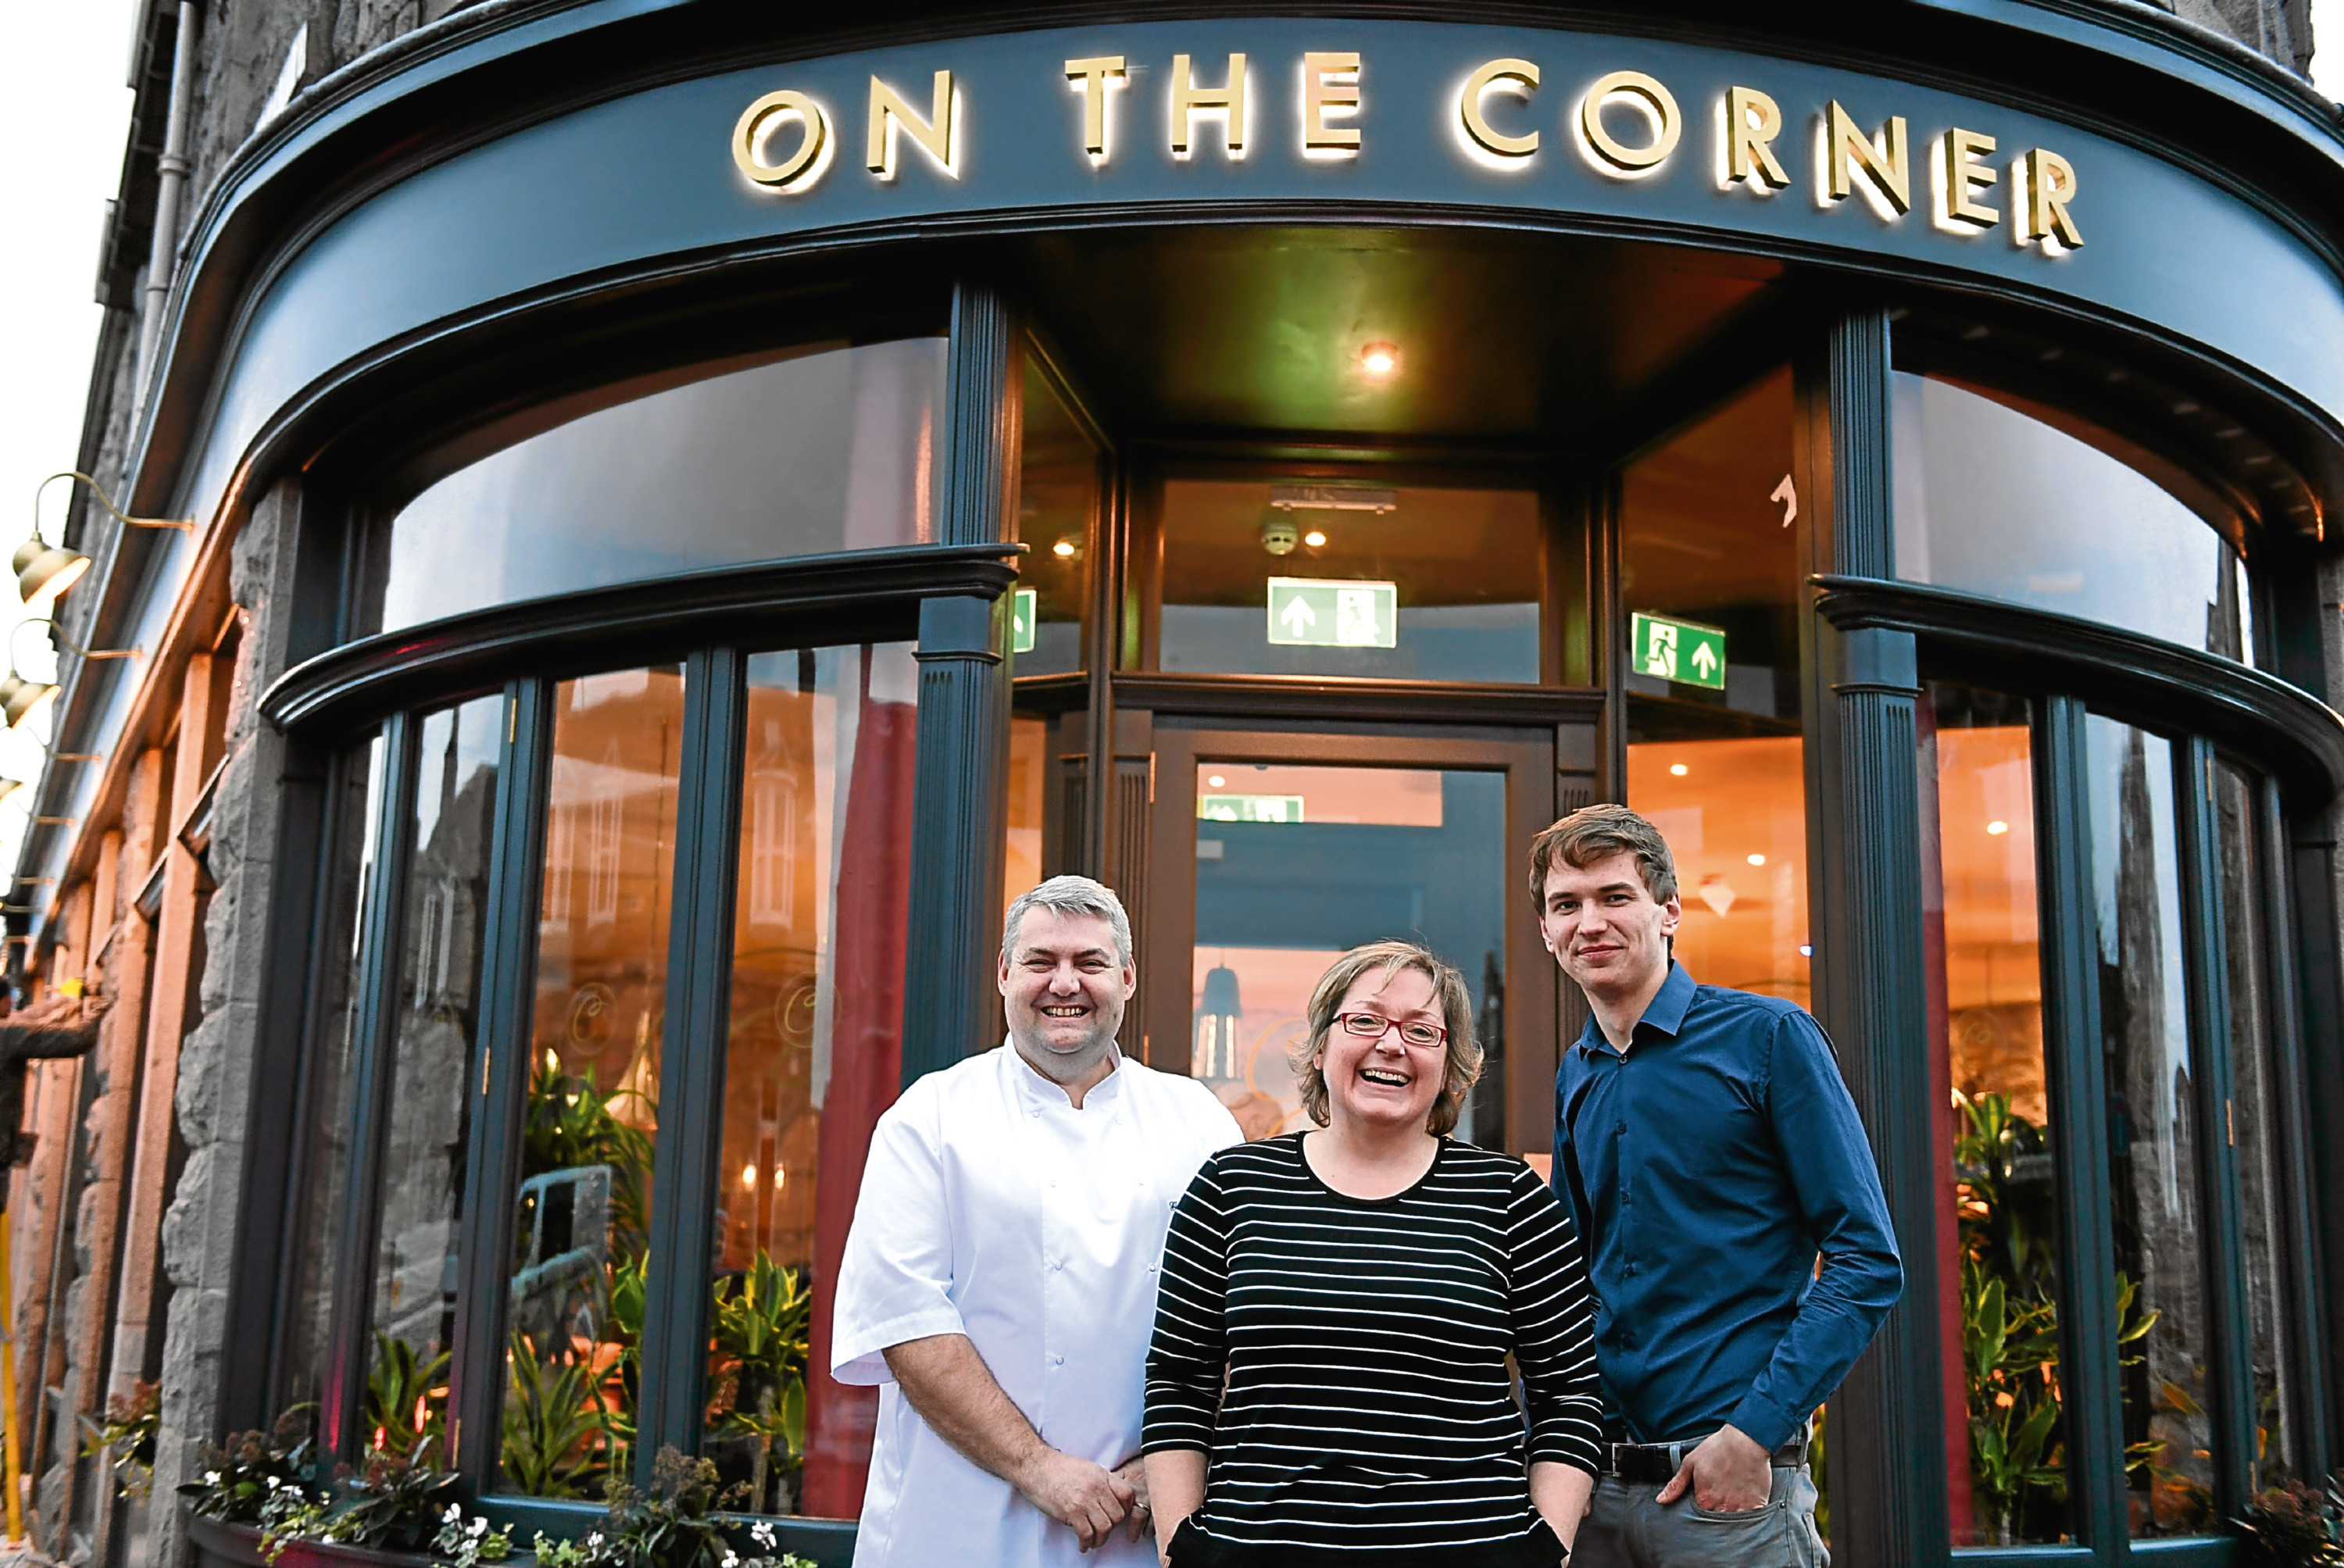 Owner Nicky Turnbull (centre) with Head Chef Graham Mutch (left) and Manager Paddy Mair (right). Picture by Kami Thomson